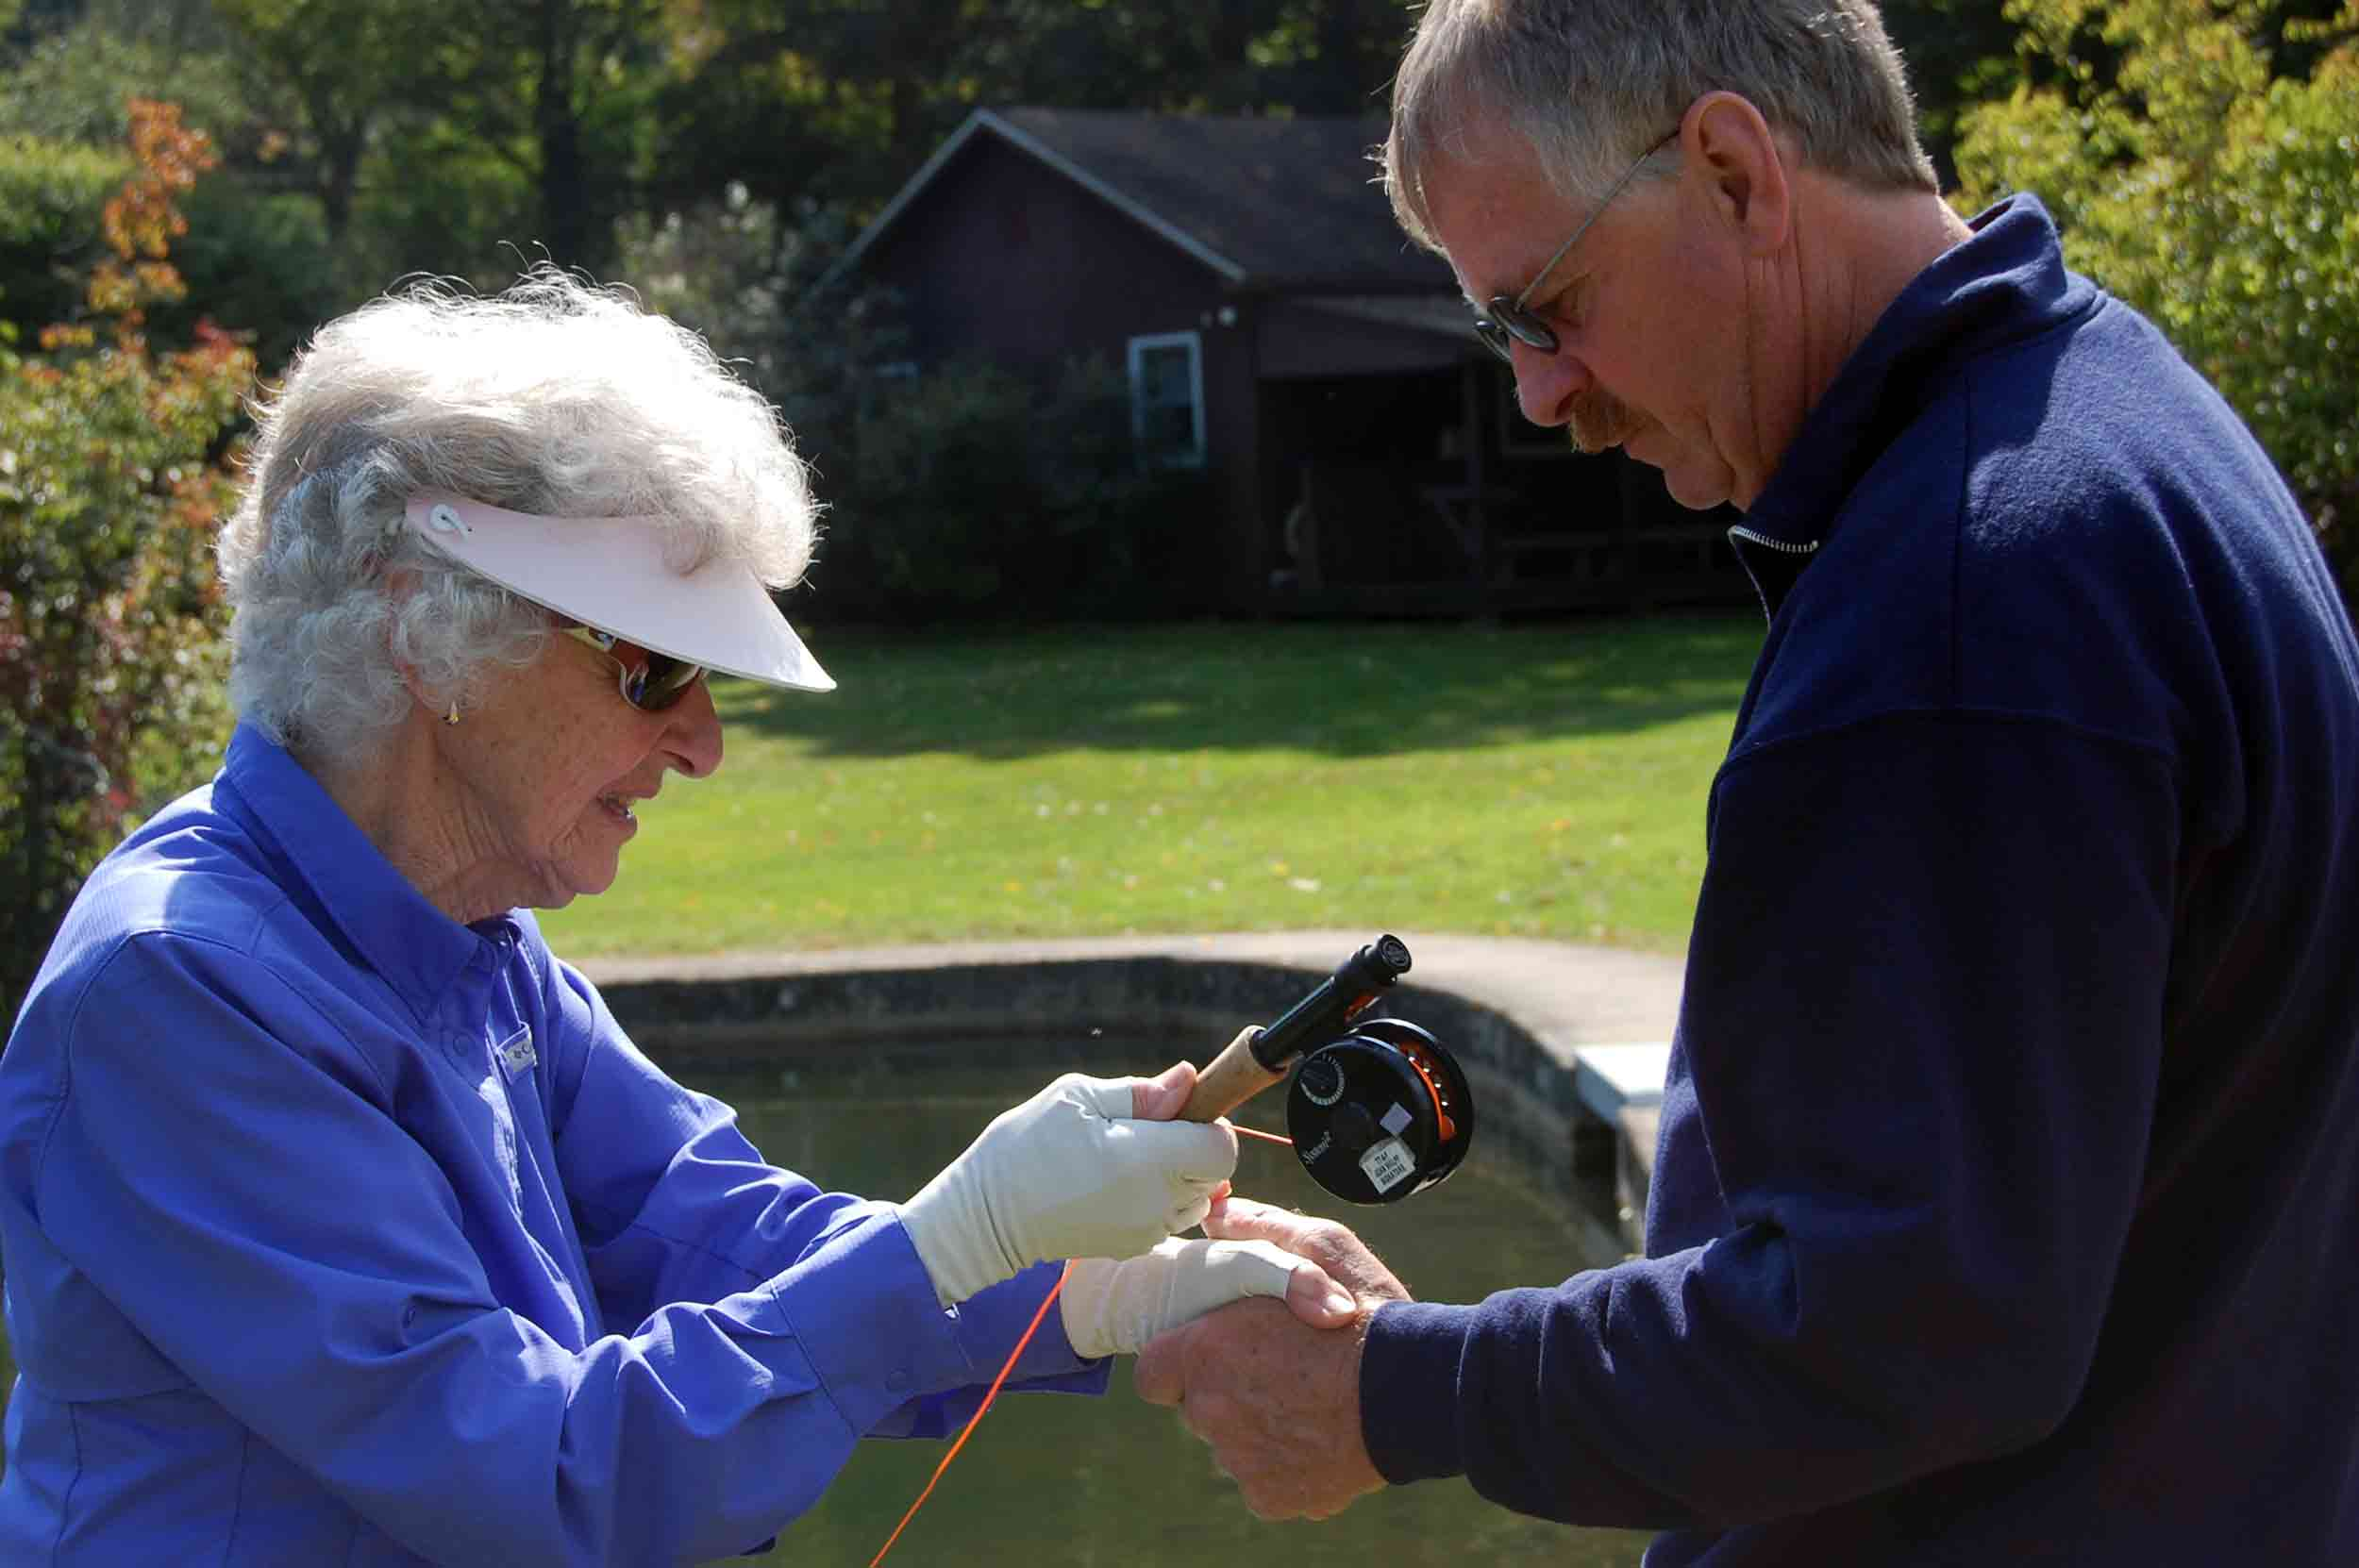 Joan Wulff fly casting with student, photo by Mike Hosier